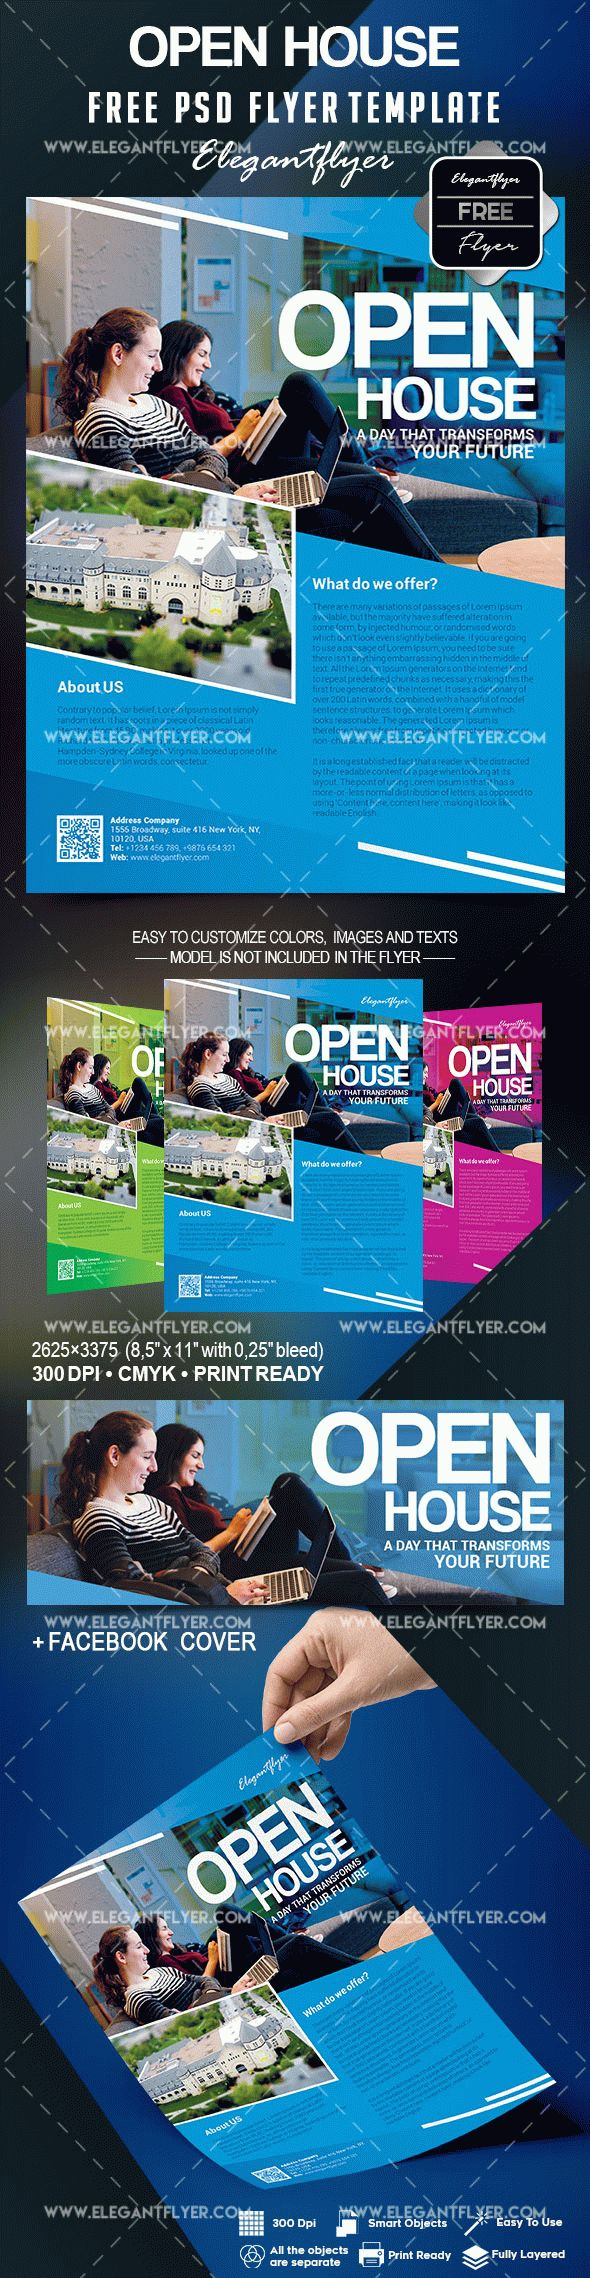 Open House Flyer Template Free By Elegantflyer